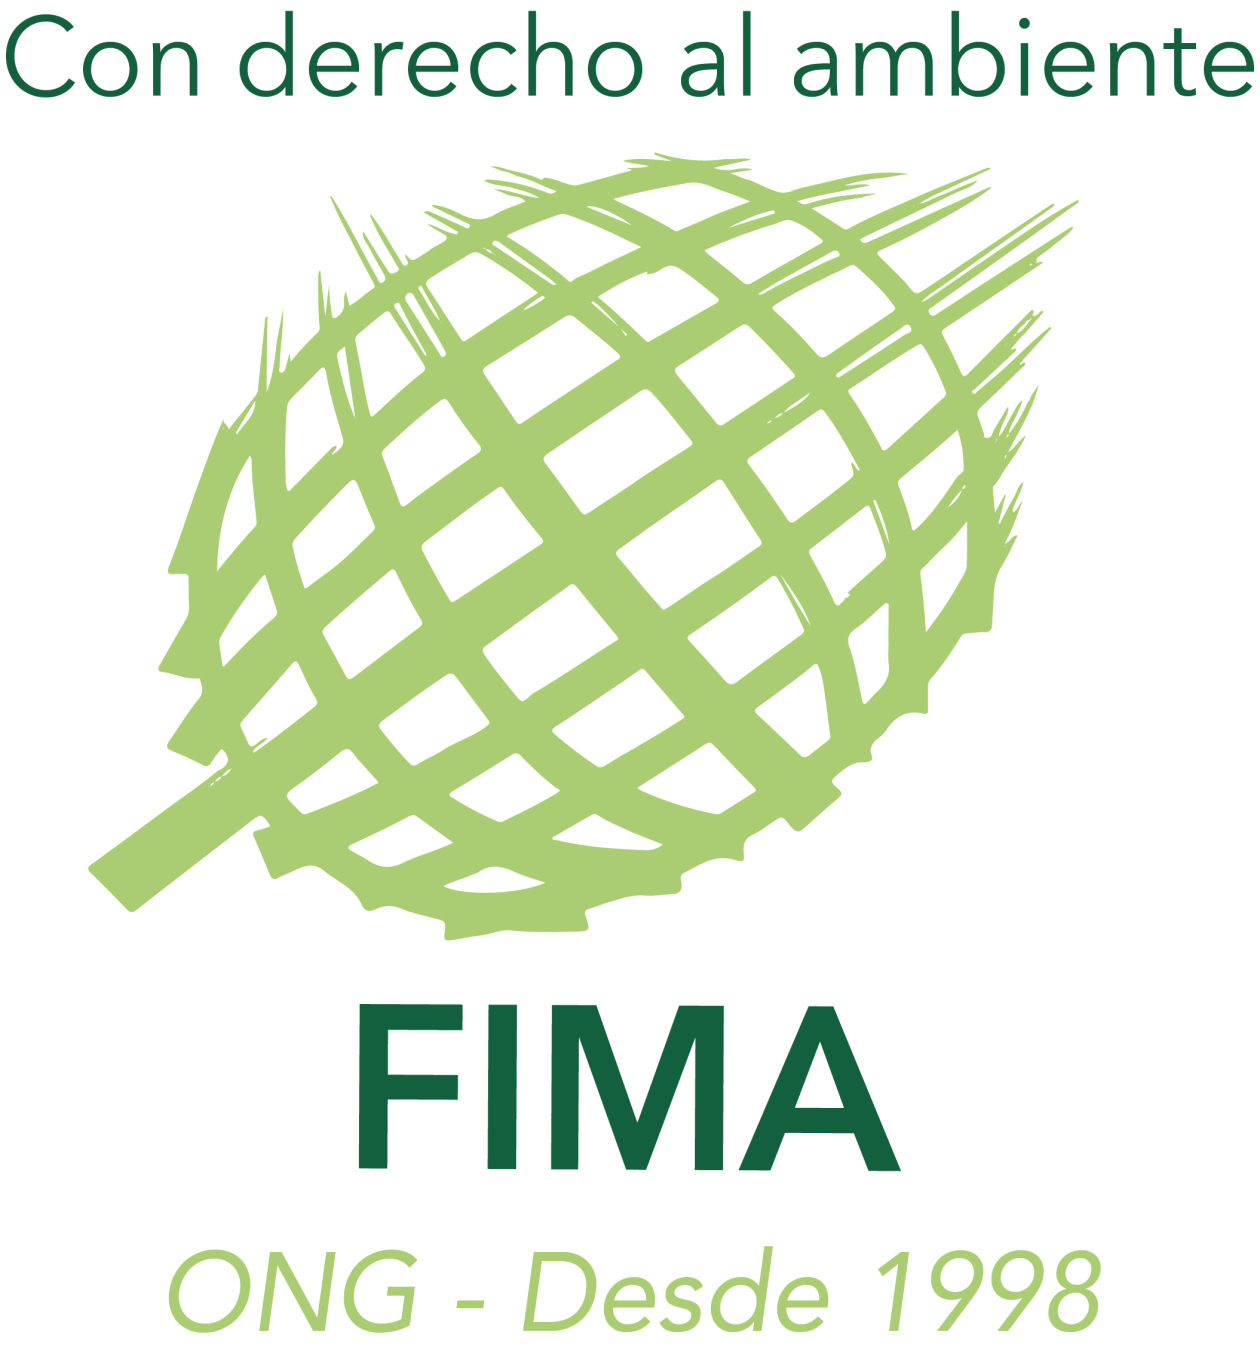 Certeza y modificaciones a la regulación ambiental | ONG FIMA